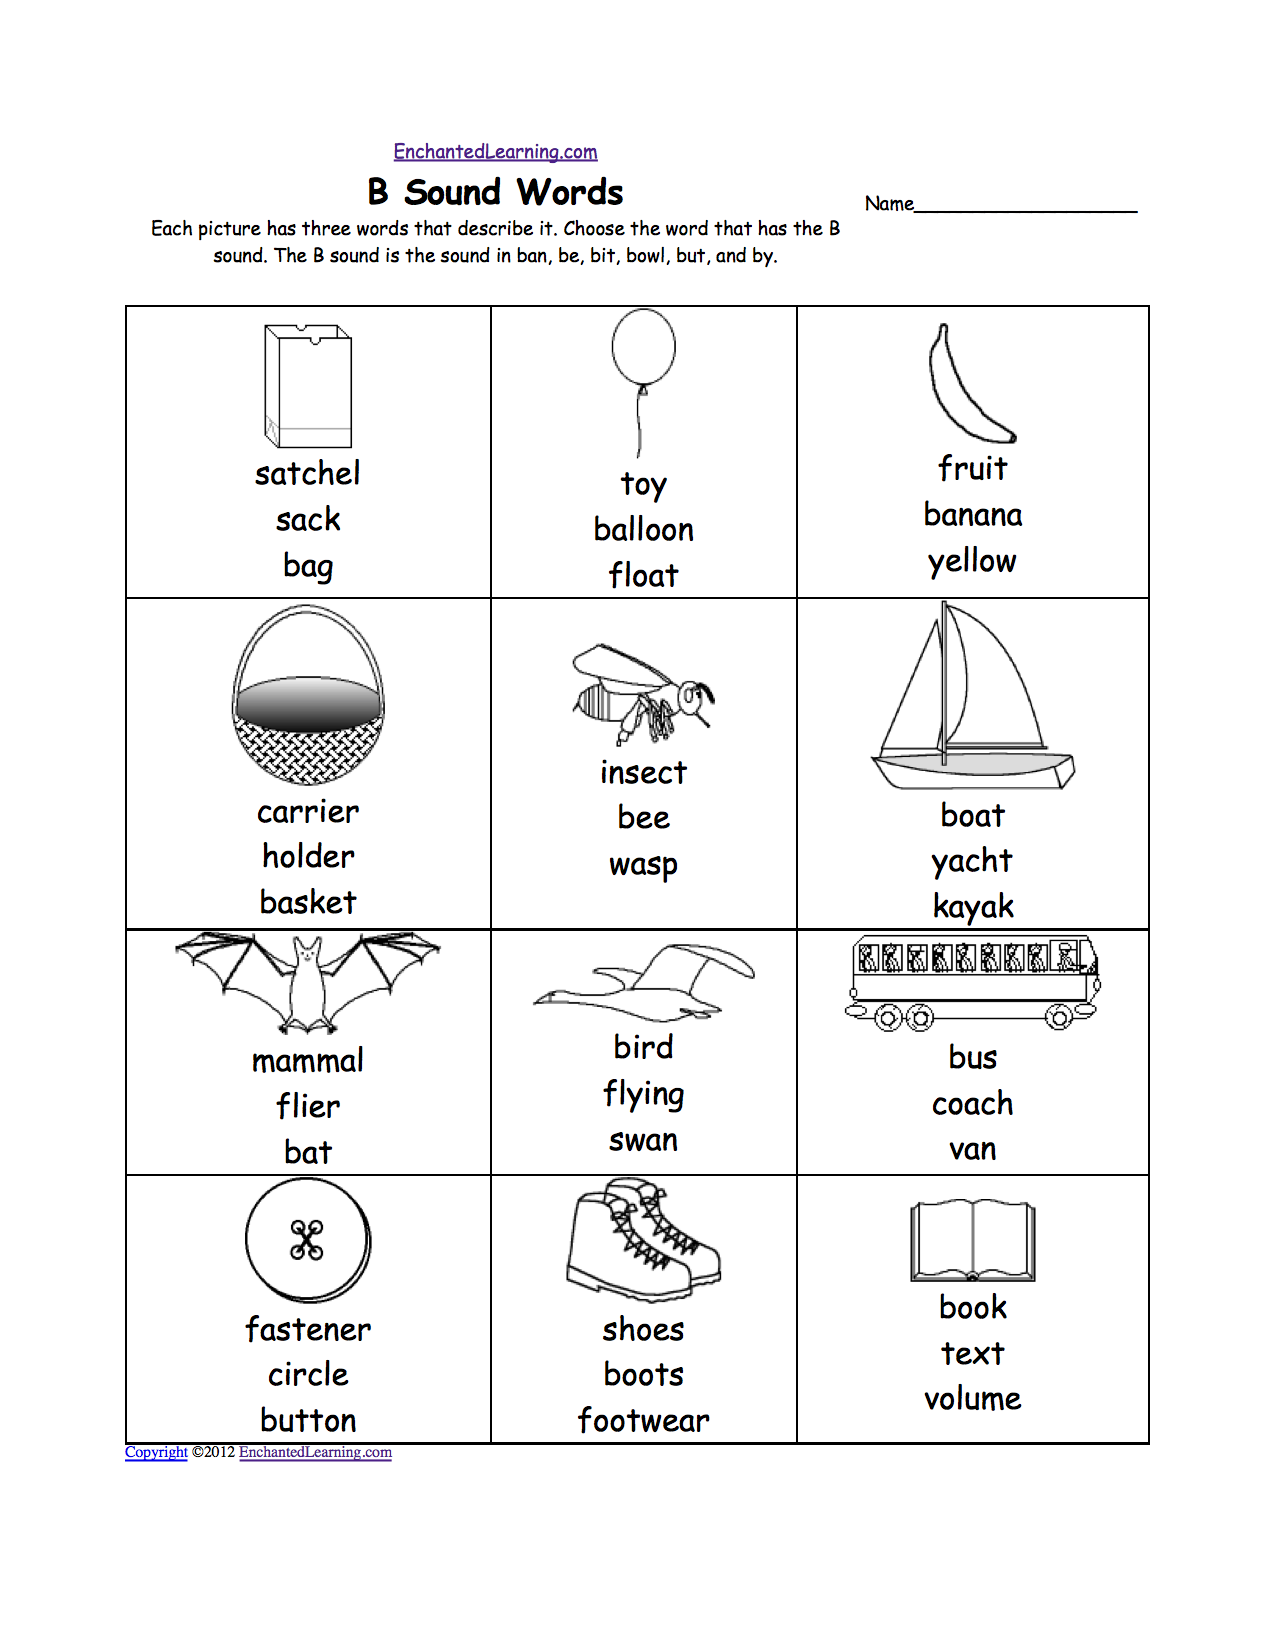 Weirdmailus  Winsome Phonics Worksheets Multiple Choice Worksheets To Print  With Engaging Quotbquot Sound Phonics Worksheet Multiple Choice Each Picture Has Three Words That Describe It Choose The Word That Has A Quotbquot Sound The Quotbquot Sound Is The Sound  With Endearing High School Anatomy And Physiology Worksheets Also Fractions To Mixed Numbers Worksheet In Addition Dear Man Dbt Worksheet And Government Worksheet As Well As Graphing Data Worksheet Additionally Hibernation Worksheets For Preschoolers From Enchantedlearningcom With Weirdmailus  Engaging Phonics Worksheets Multiple Choice Worksheets To Print  With Endearing Quotbquot Sound Phonics Worksheet Multiple Choice Each Picture Has Three Words That Describe It Choose The Word That Has A Quotbquot Sound The Quotbquot Sound Is The Sound  And Winsome High School Anatomy And Physiology Worksheets Also Fractions To Mixed Numbers Worksheet In Addition Dear Man Dbt Worksheet From Enchantedlearningcom